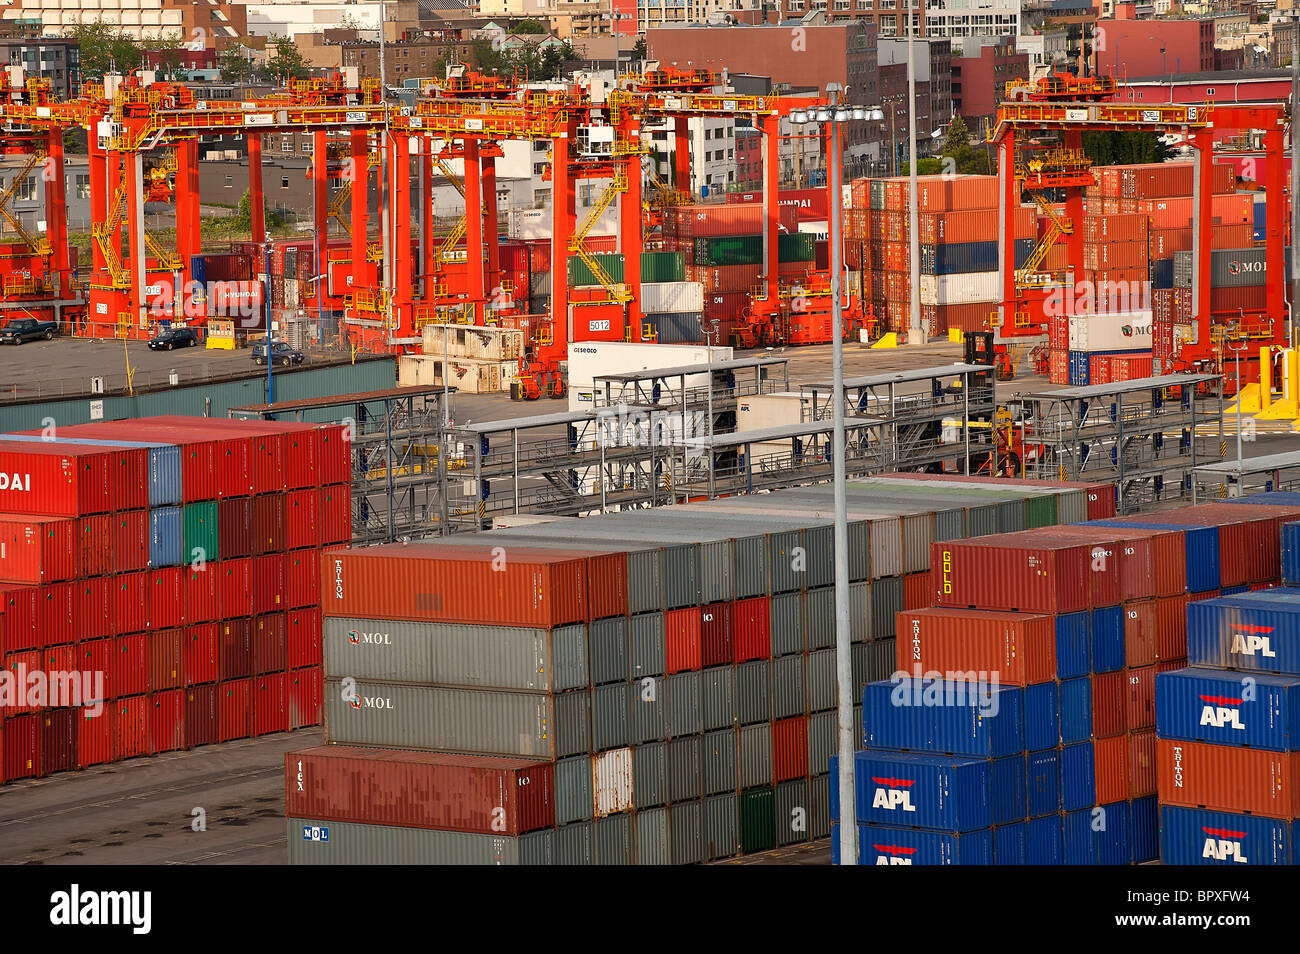 Cargo containers being off loaded in the port city of Vancouver, Canada - Stock Image